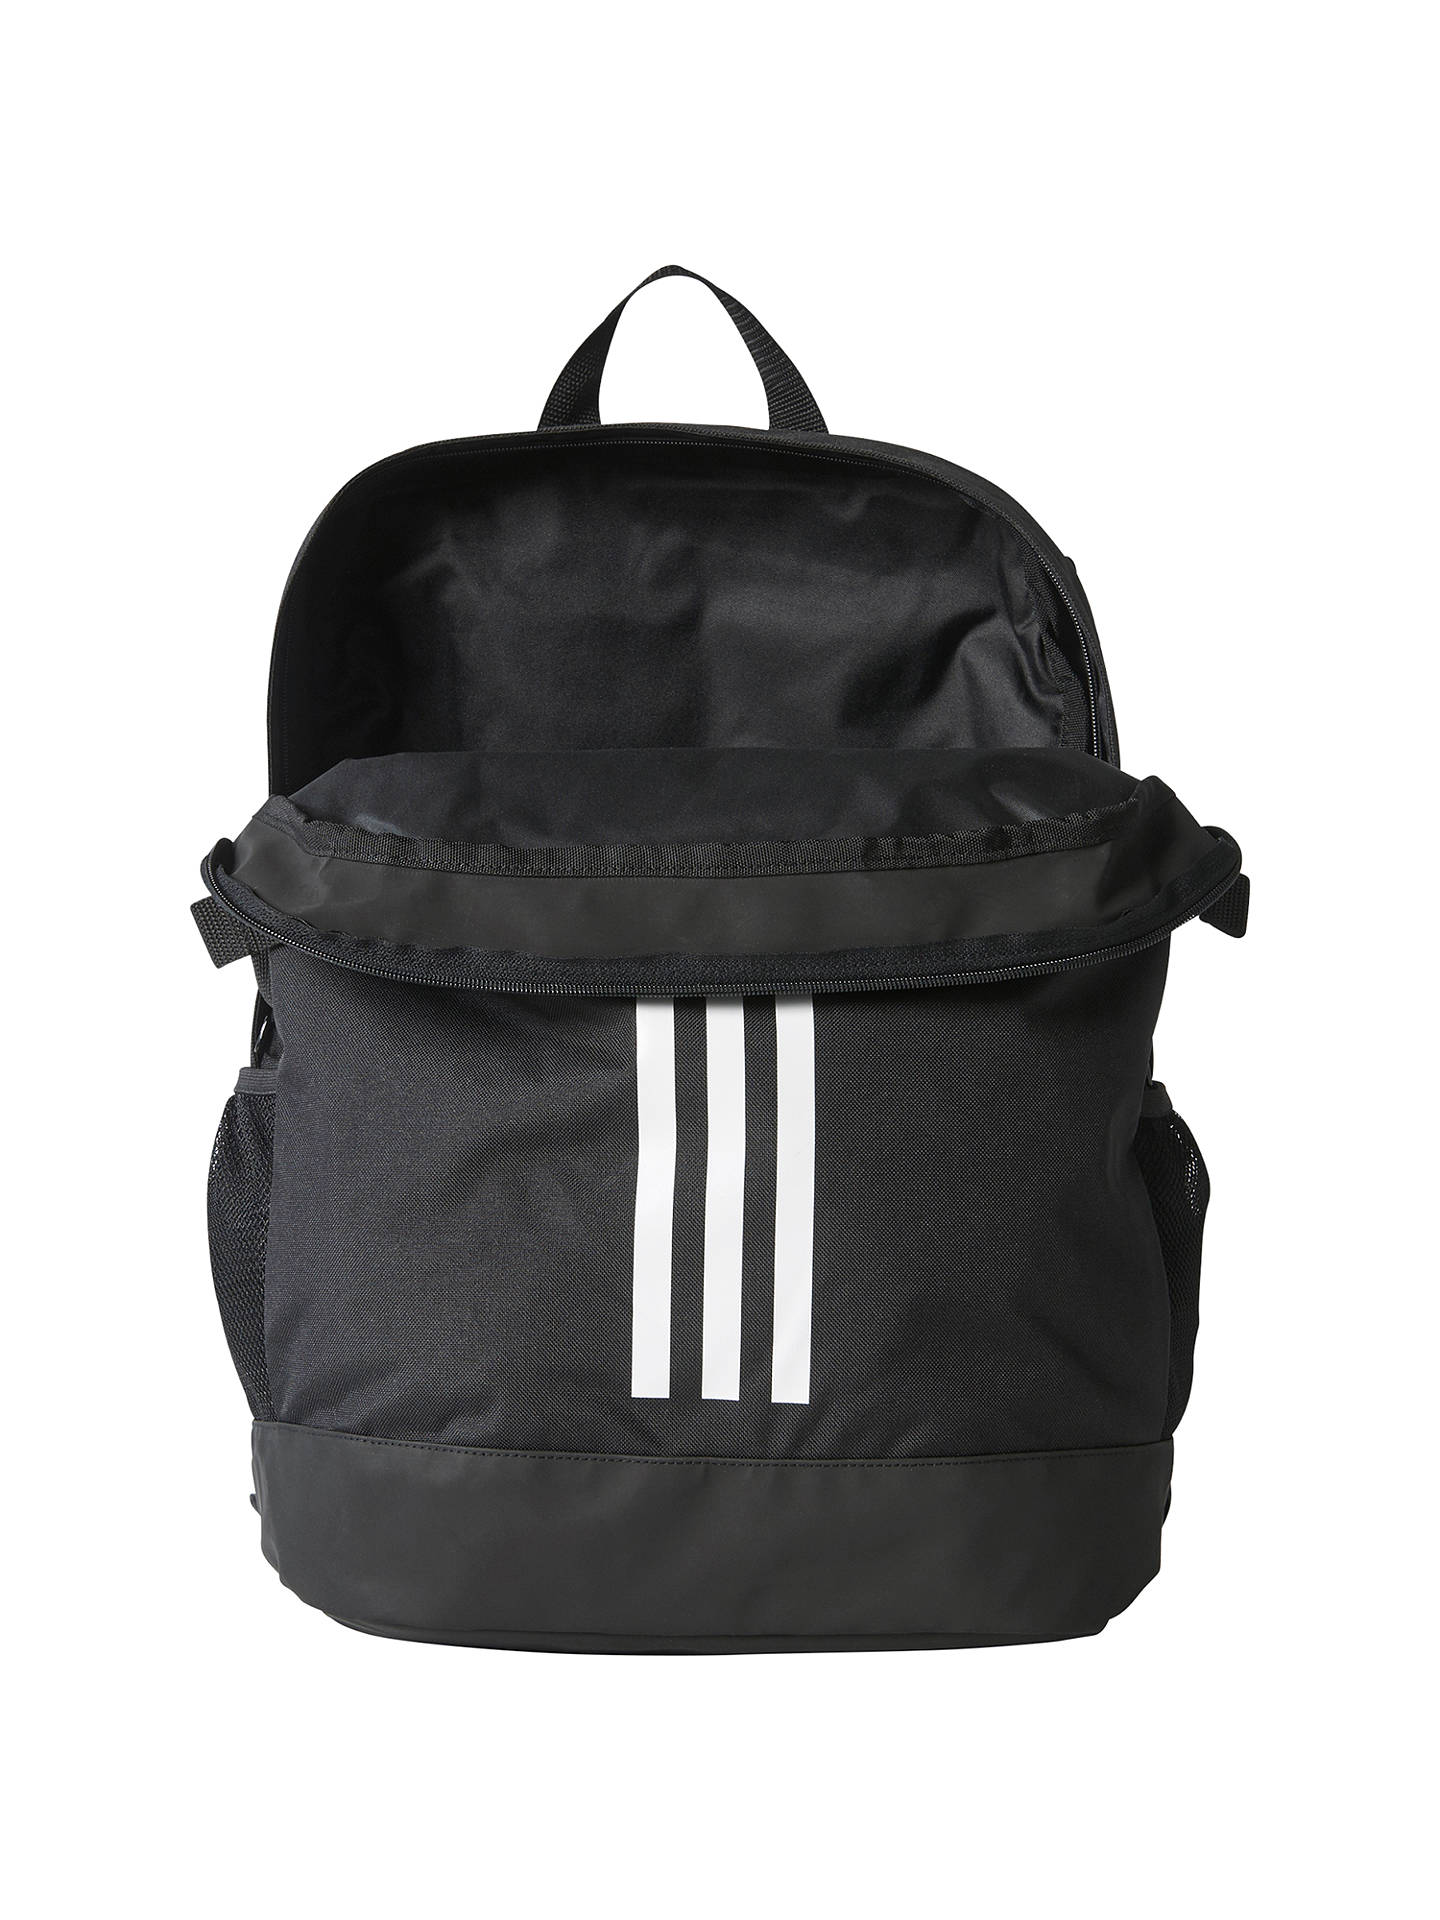 Buyadidas 3-Stripes Power Sports Backpack, Medium, Black Online at johnlewis.com